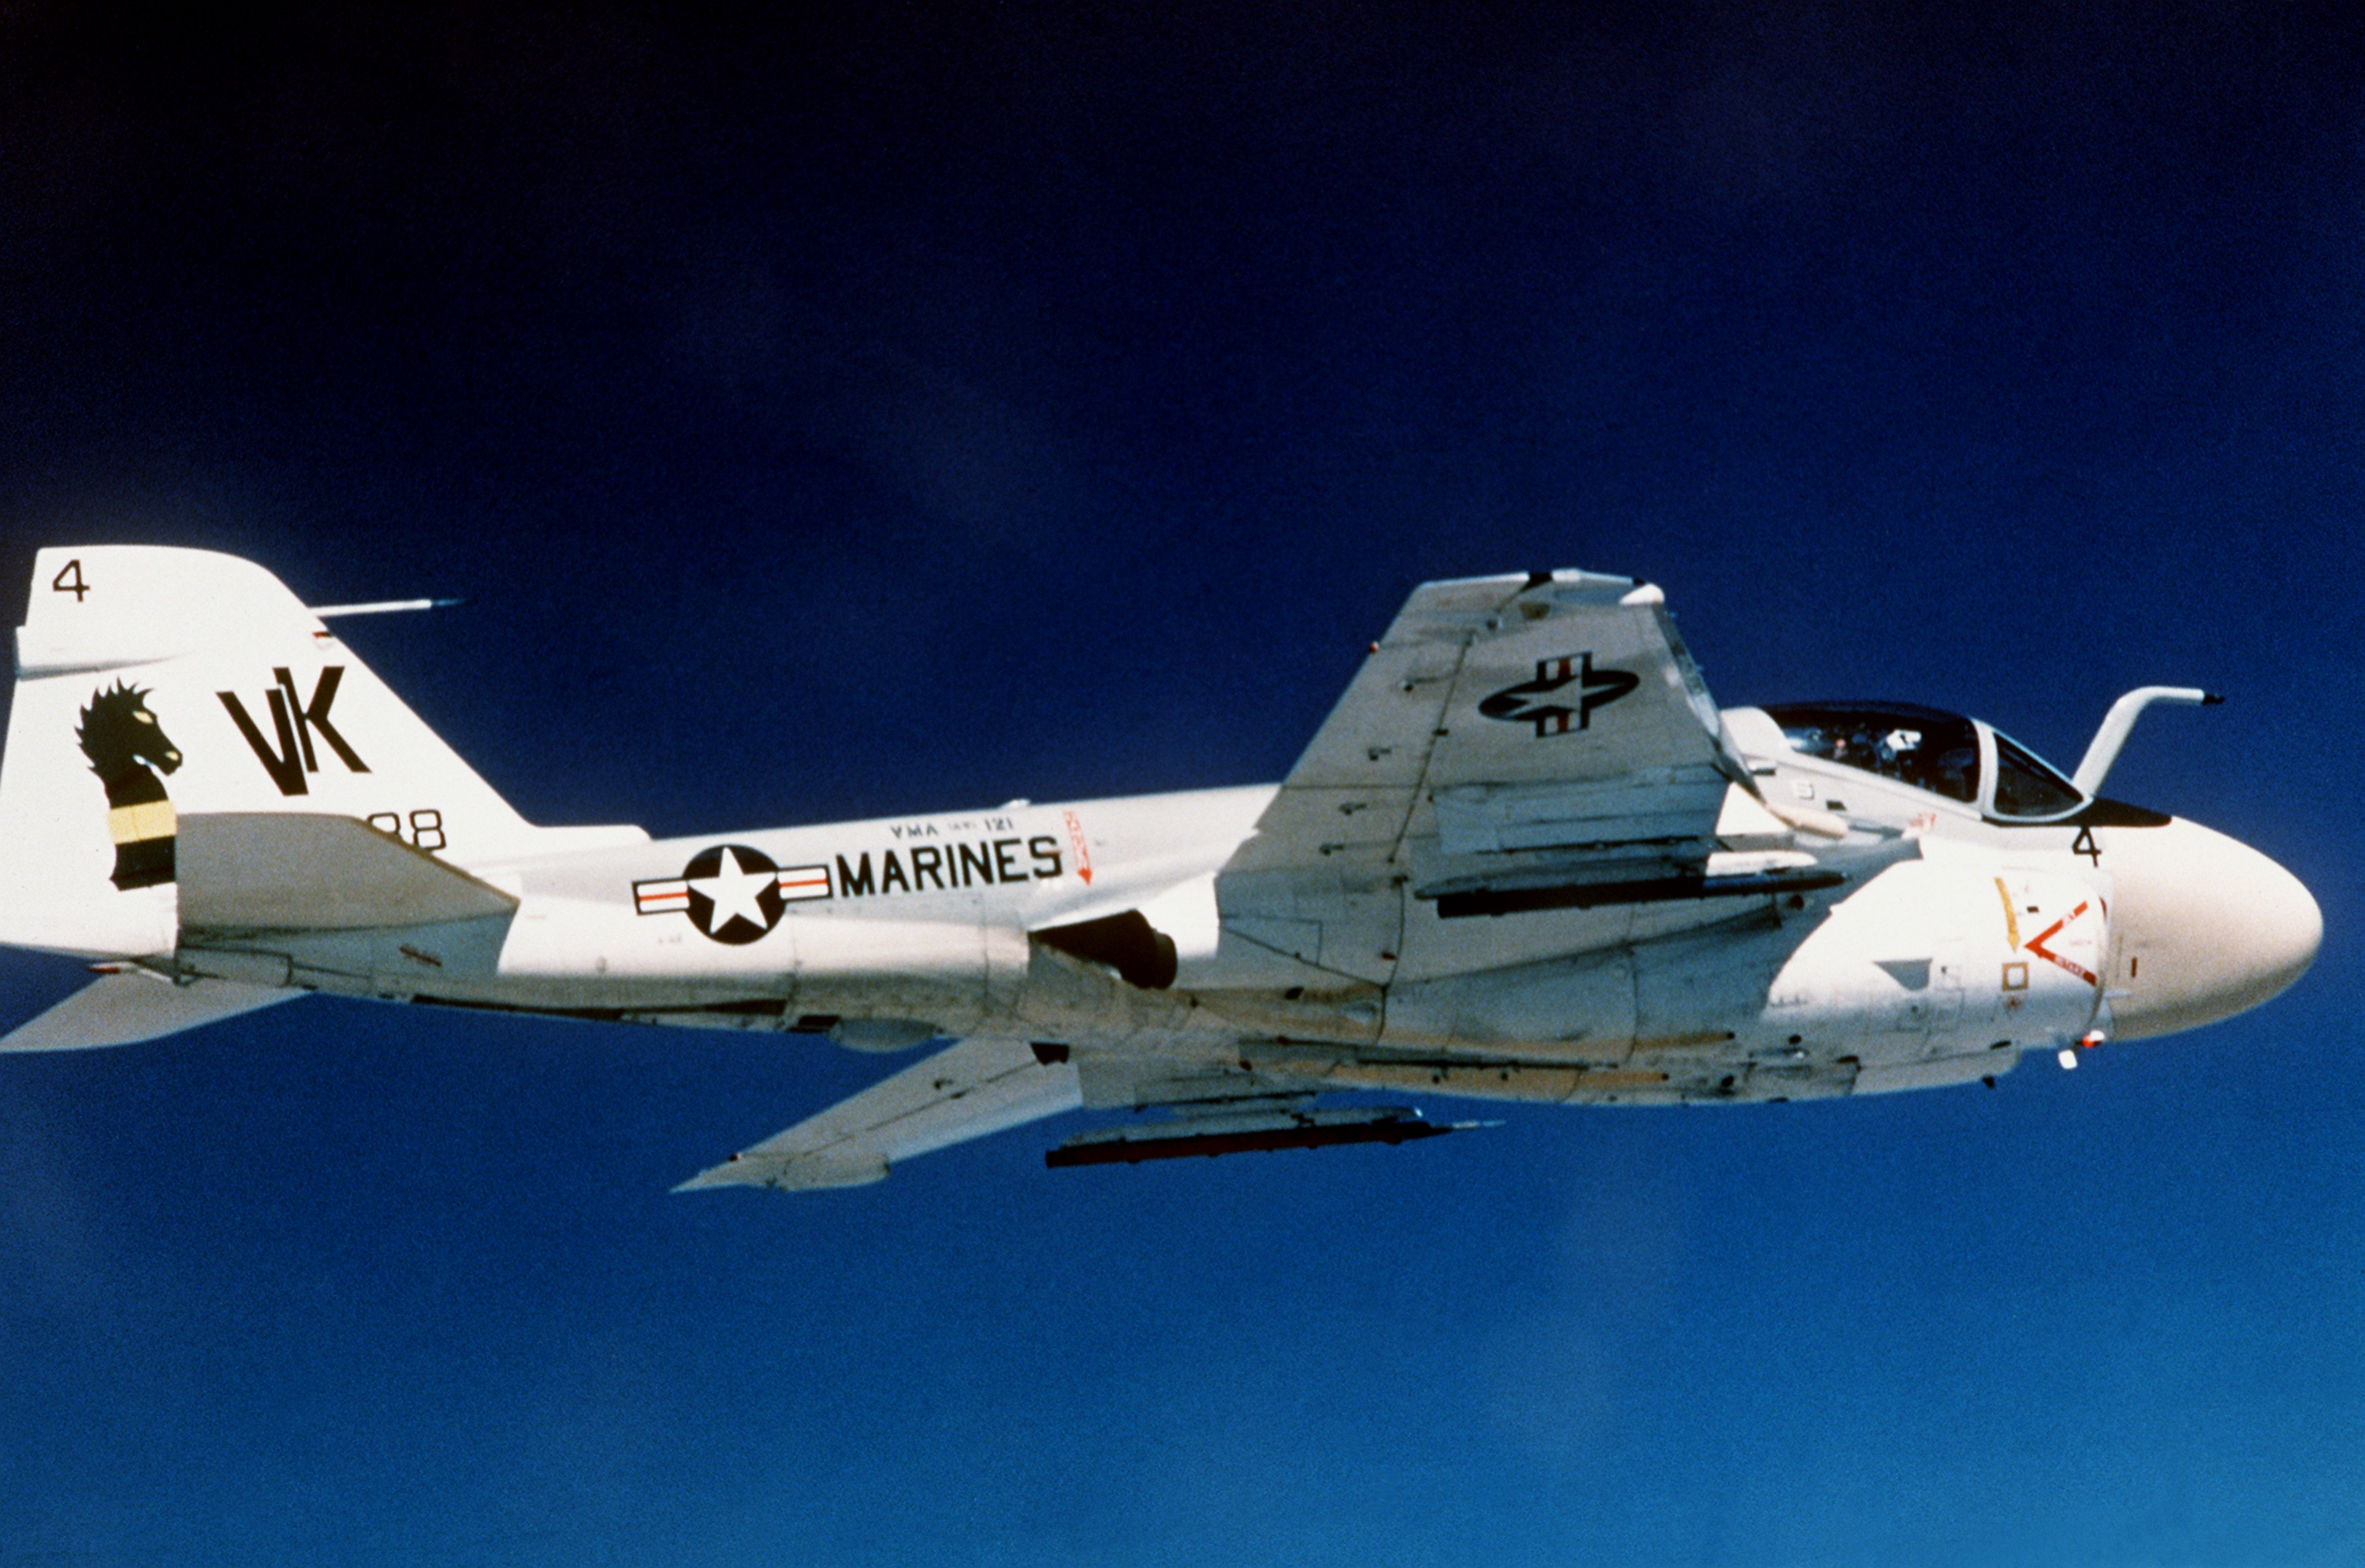 A-6E Intruder Departed from Marine Corps Service